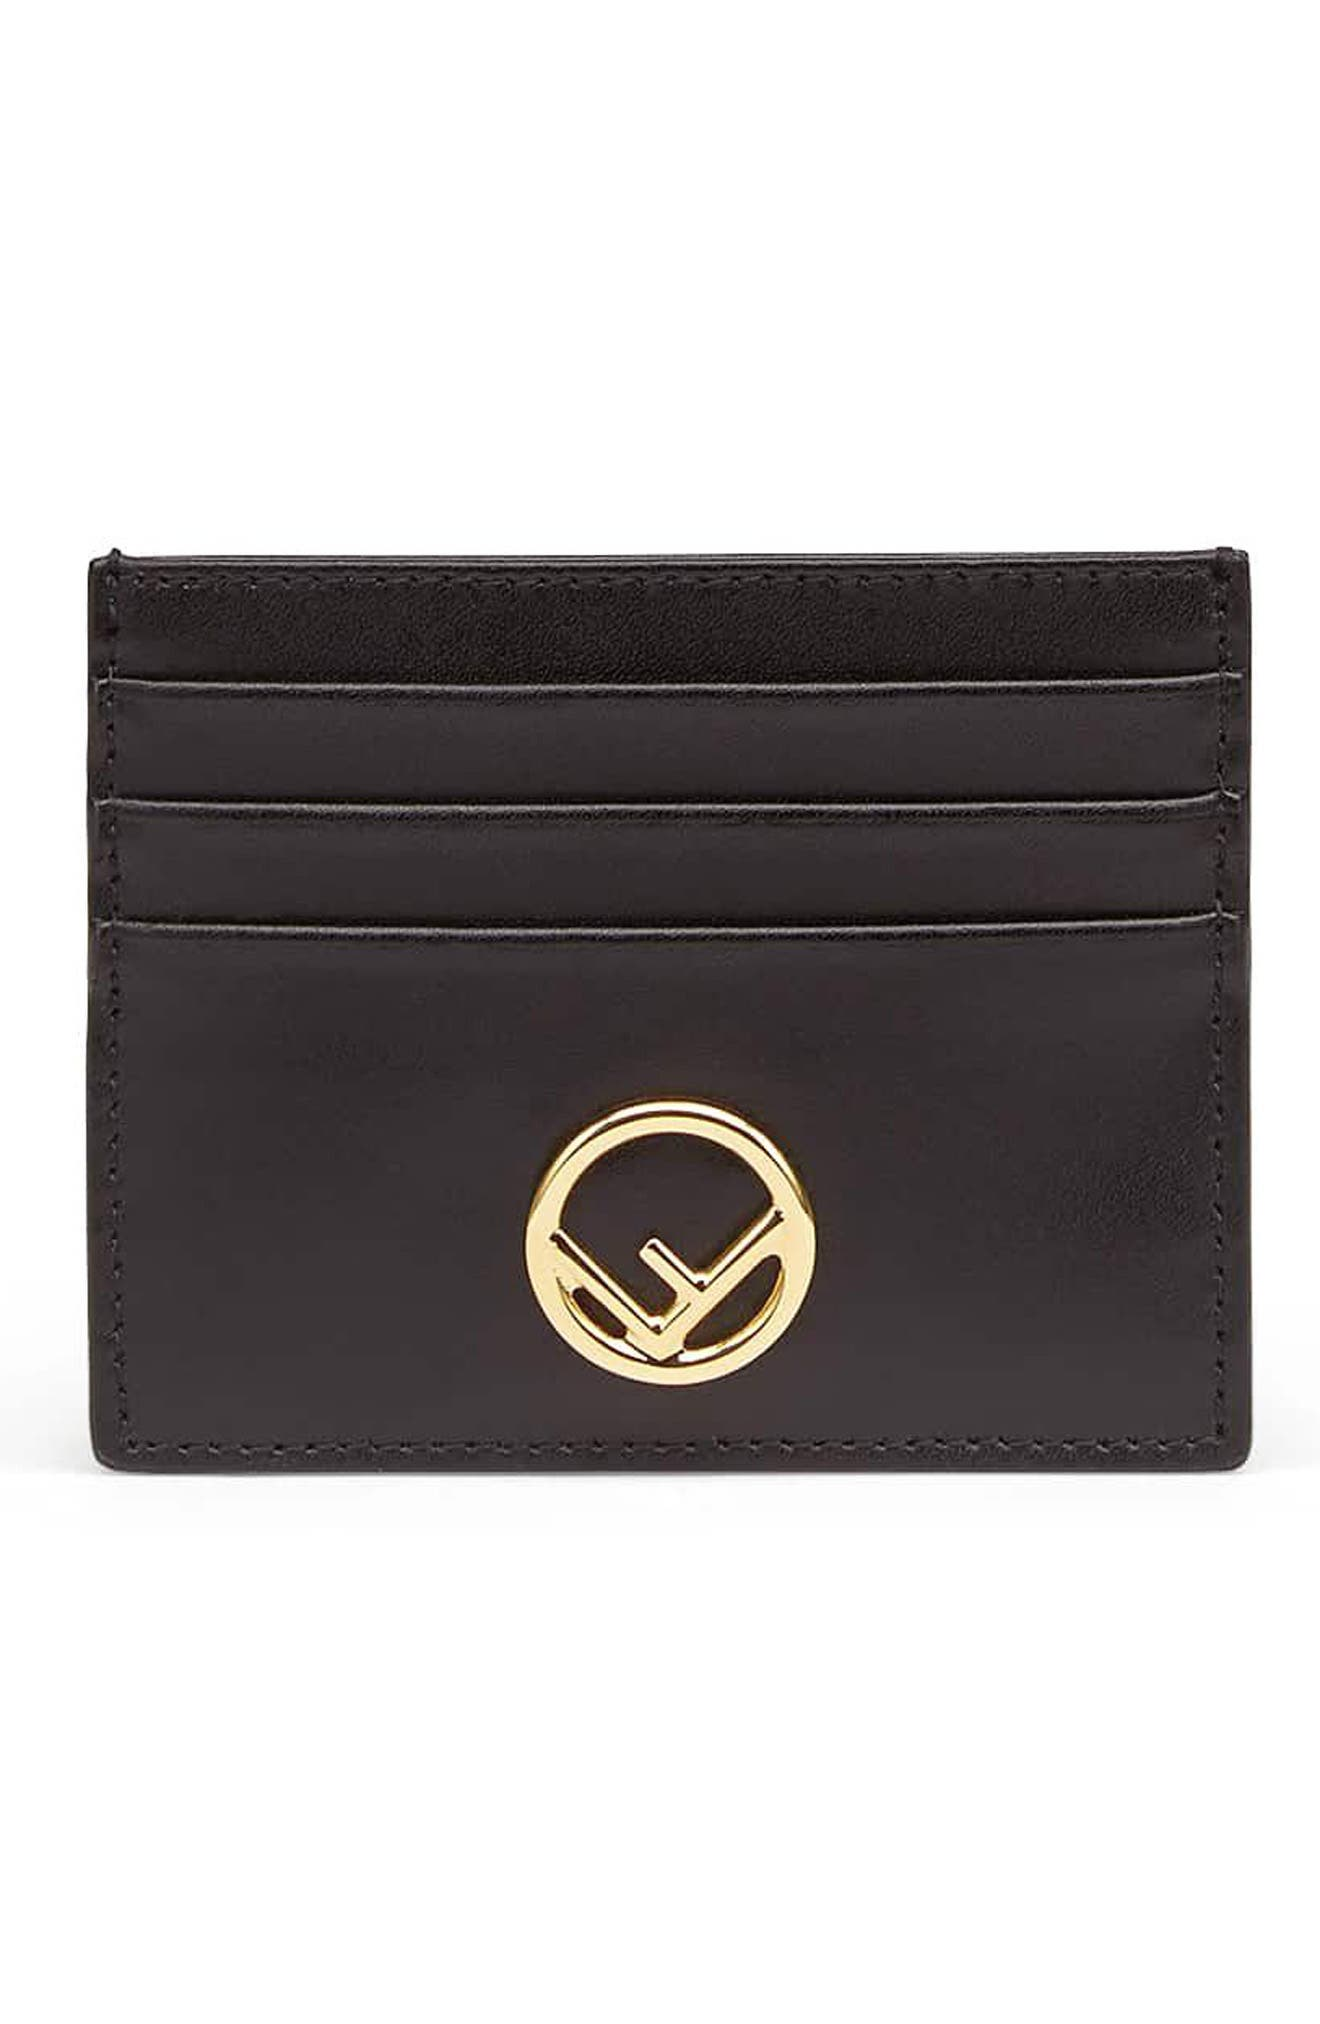 Logo Leather Card Case,                             Main thumbnail 1, color,                             NERO/ ORO SOFT